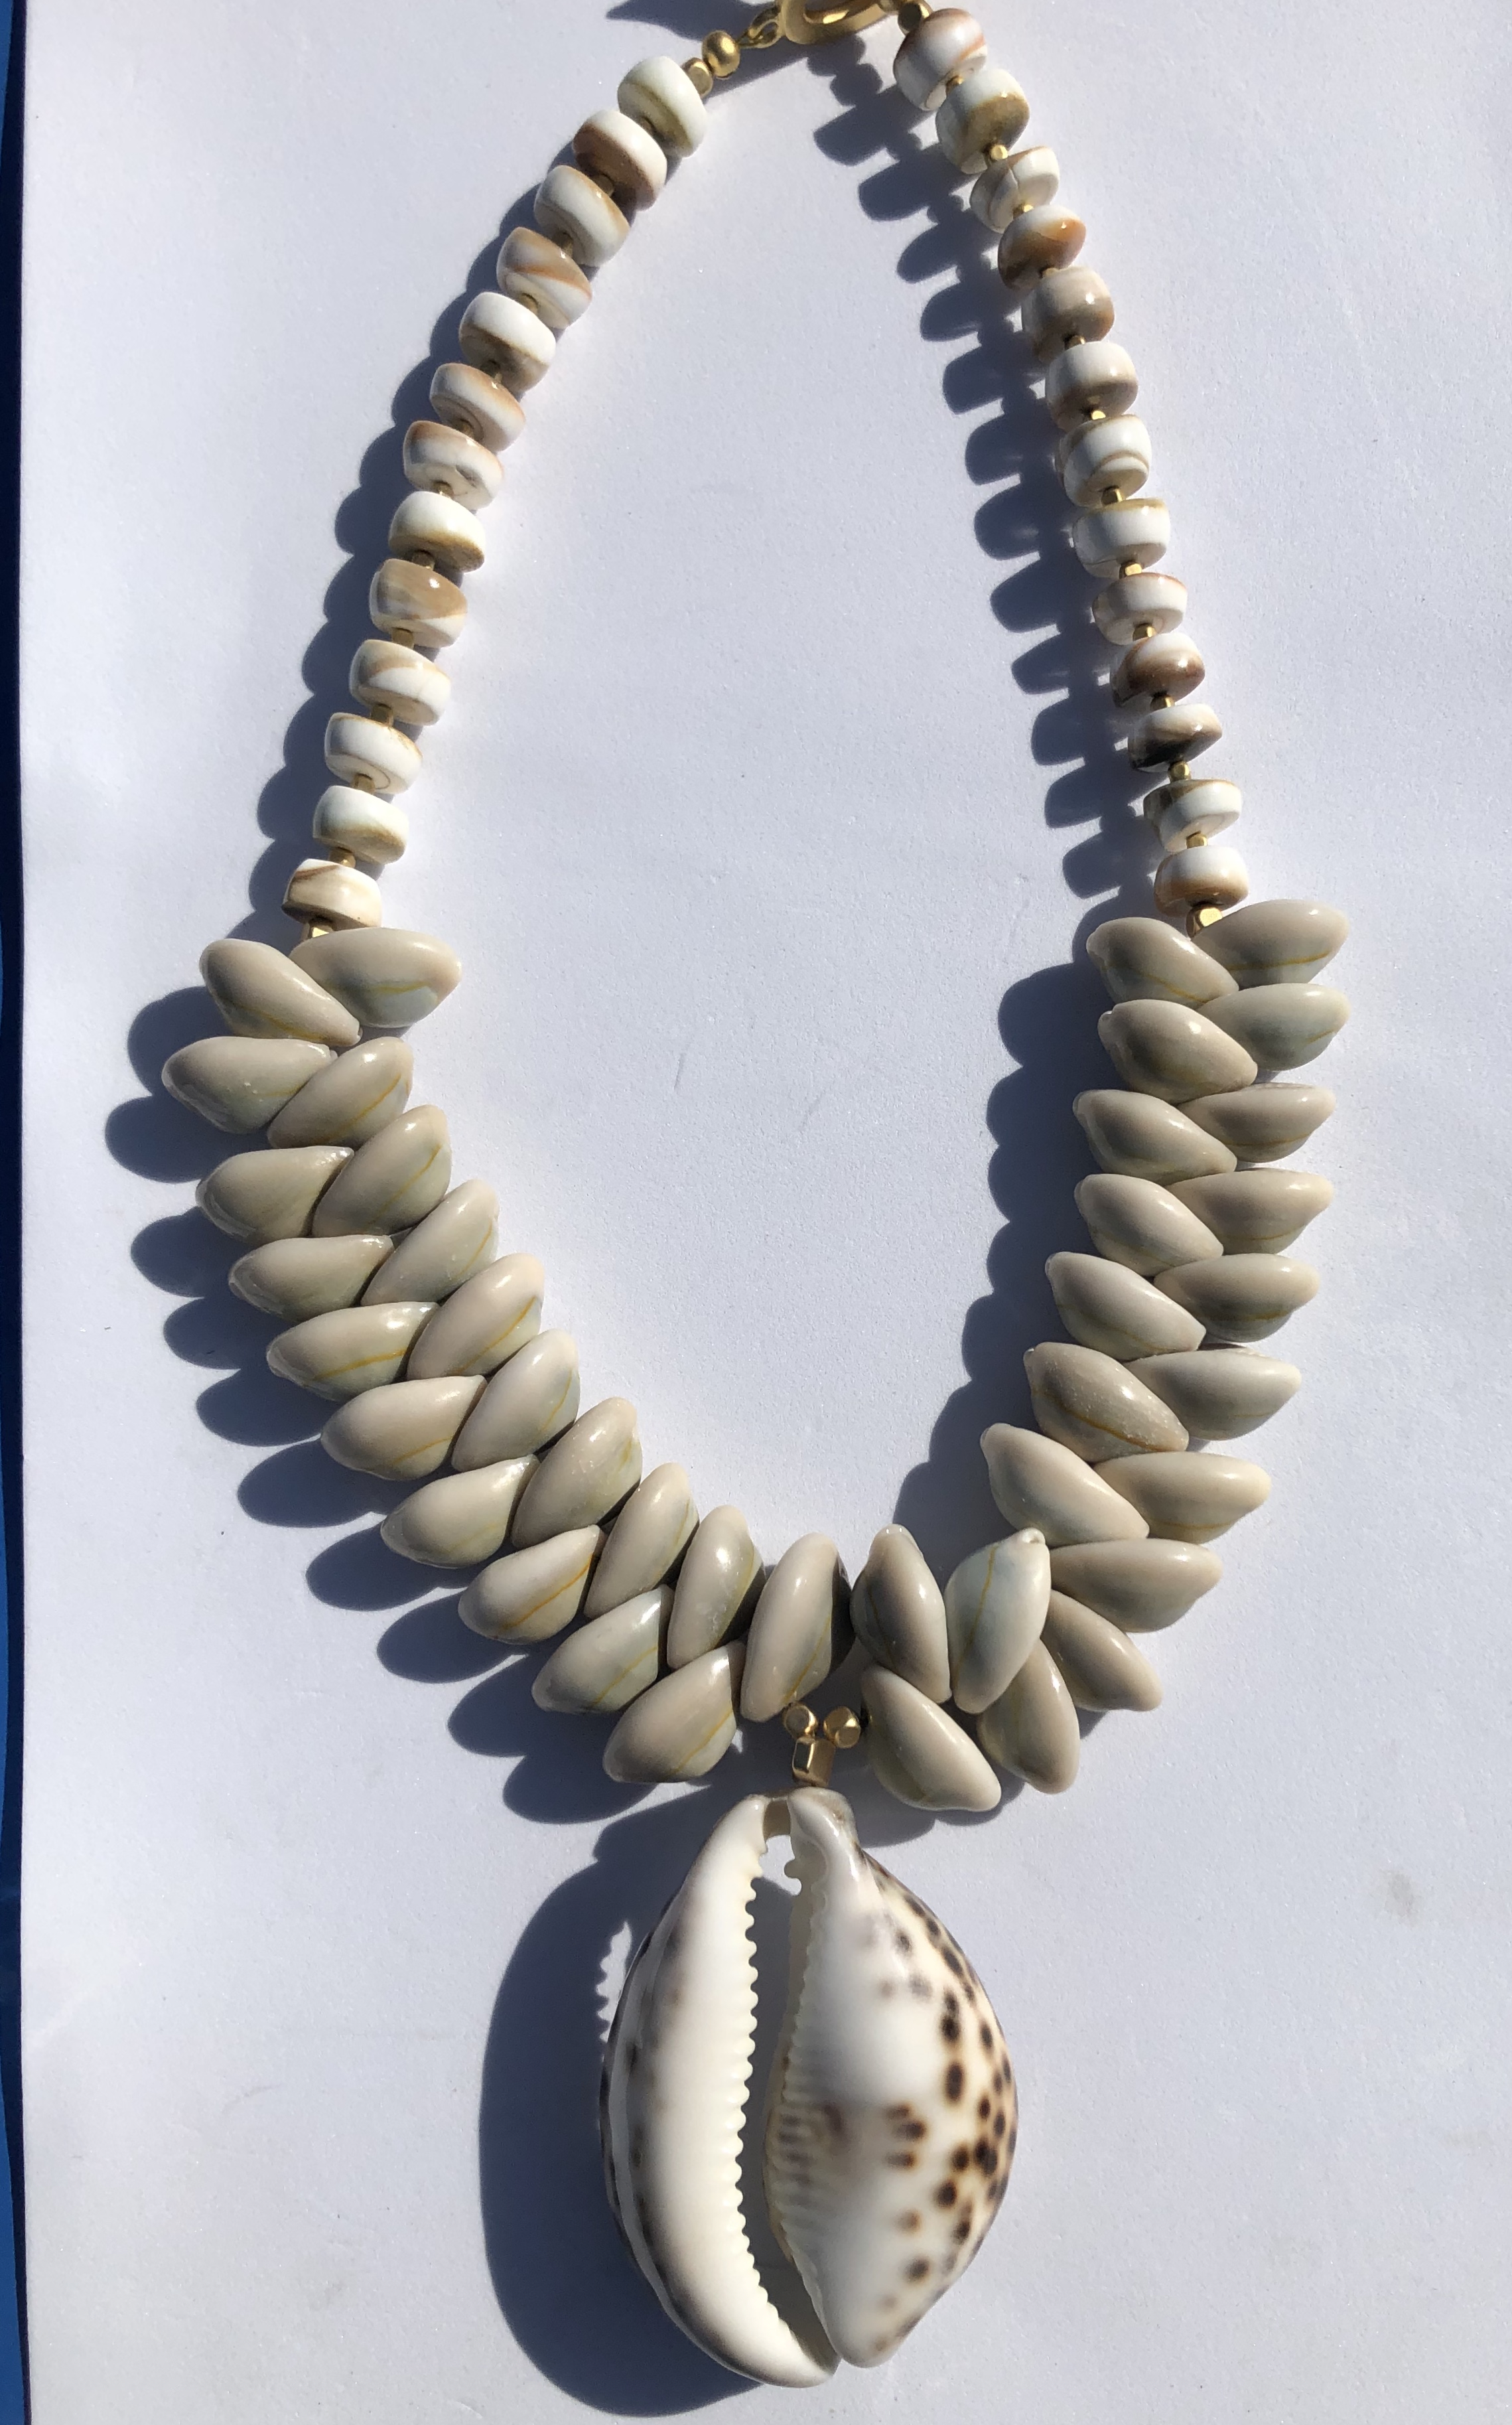 Shelley spotted shell necklace